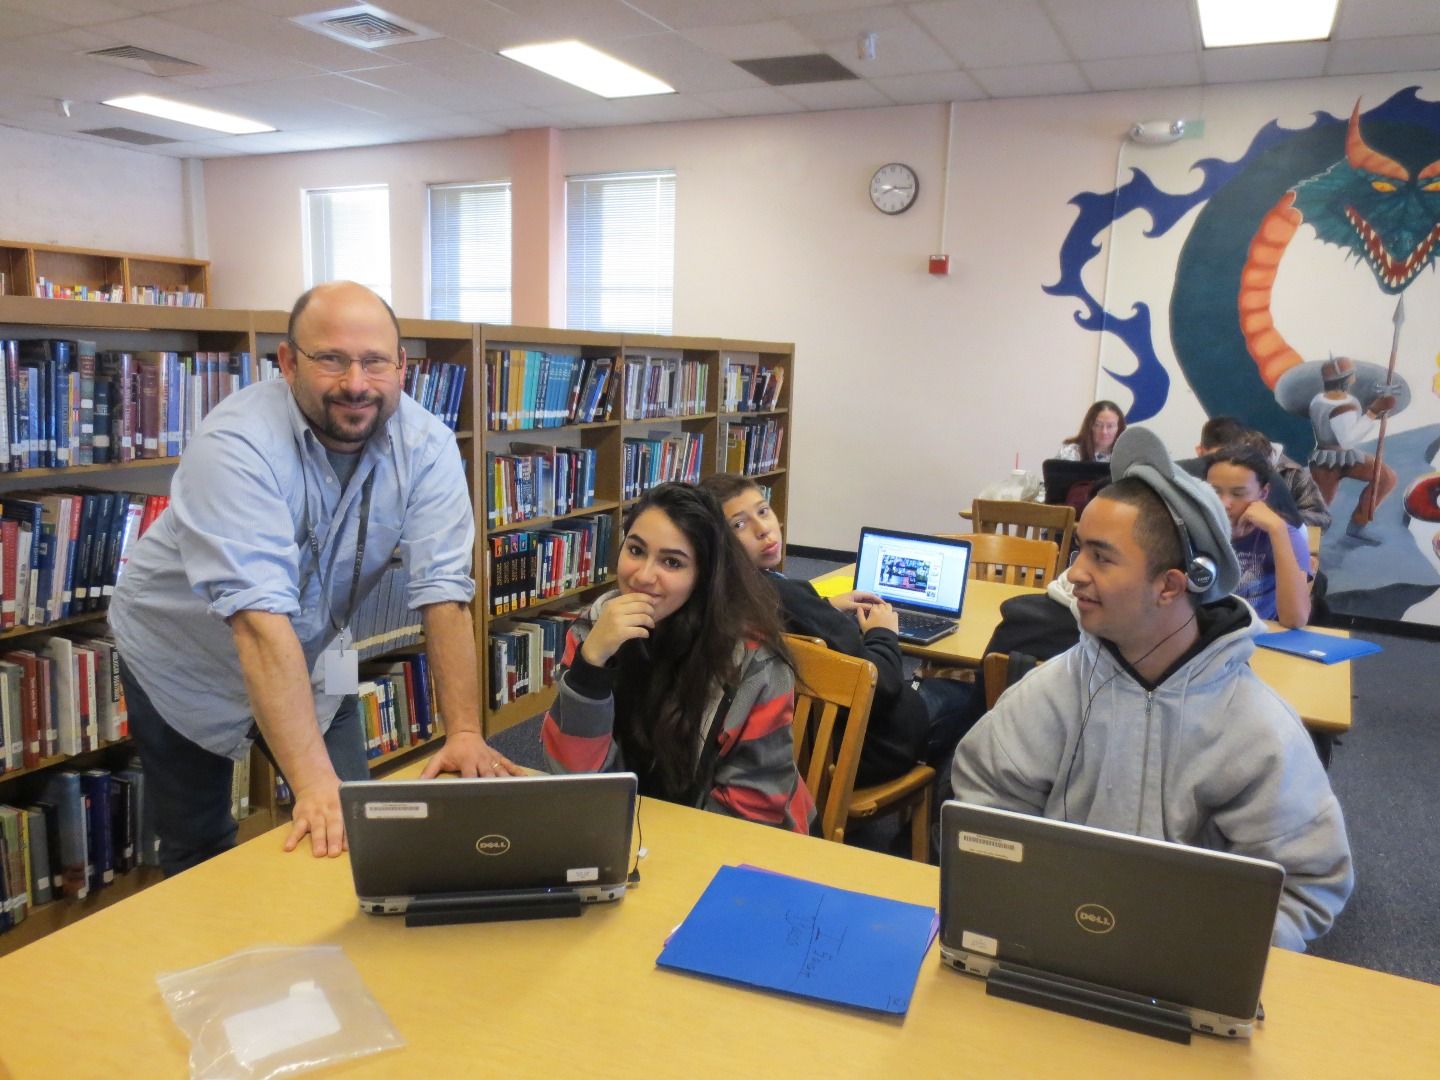 Photo of Librarian and students working in the Library